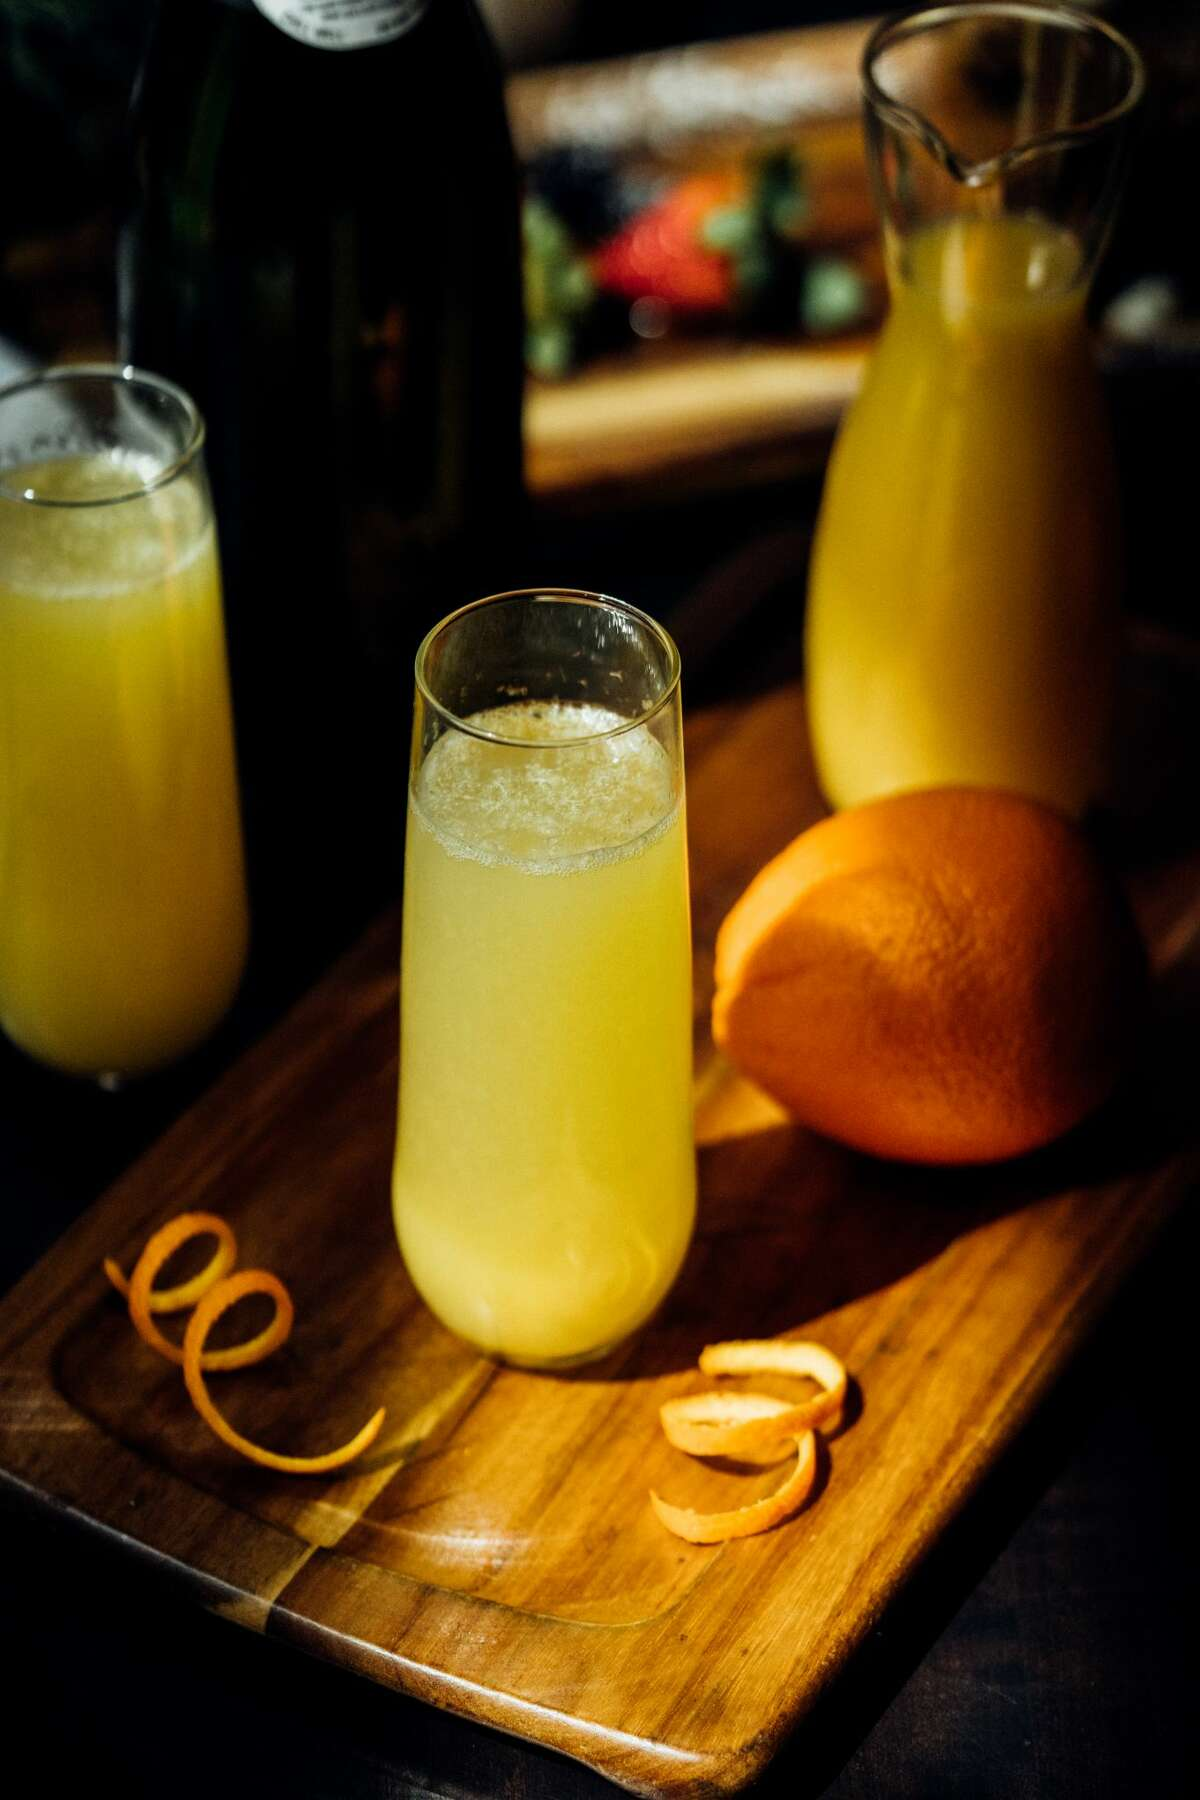 Calling all brunch bunches! The General Public has mimosas for one buck every weekend.